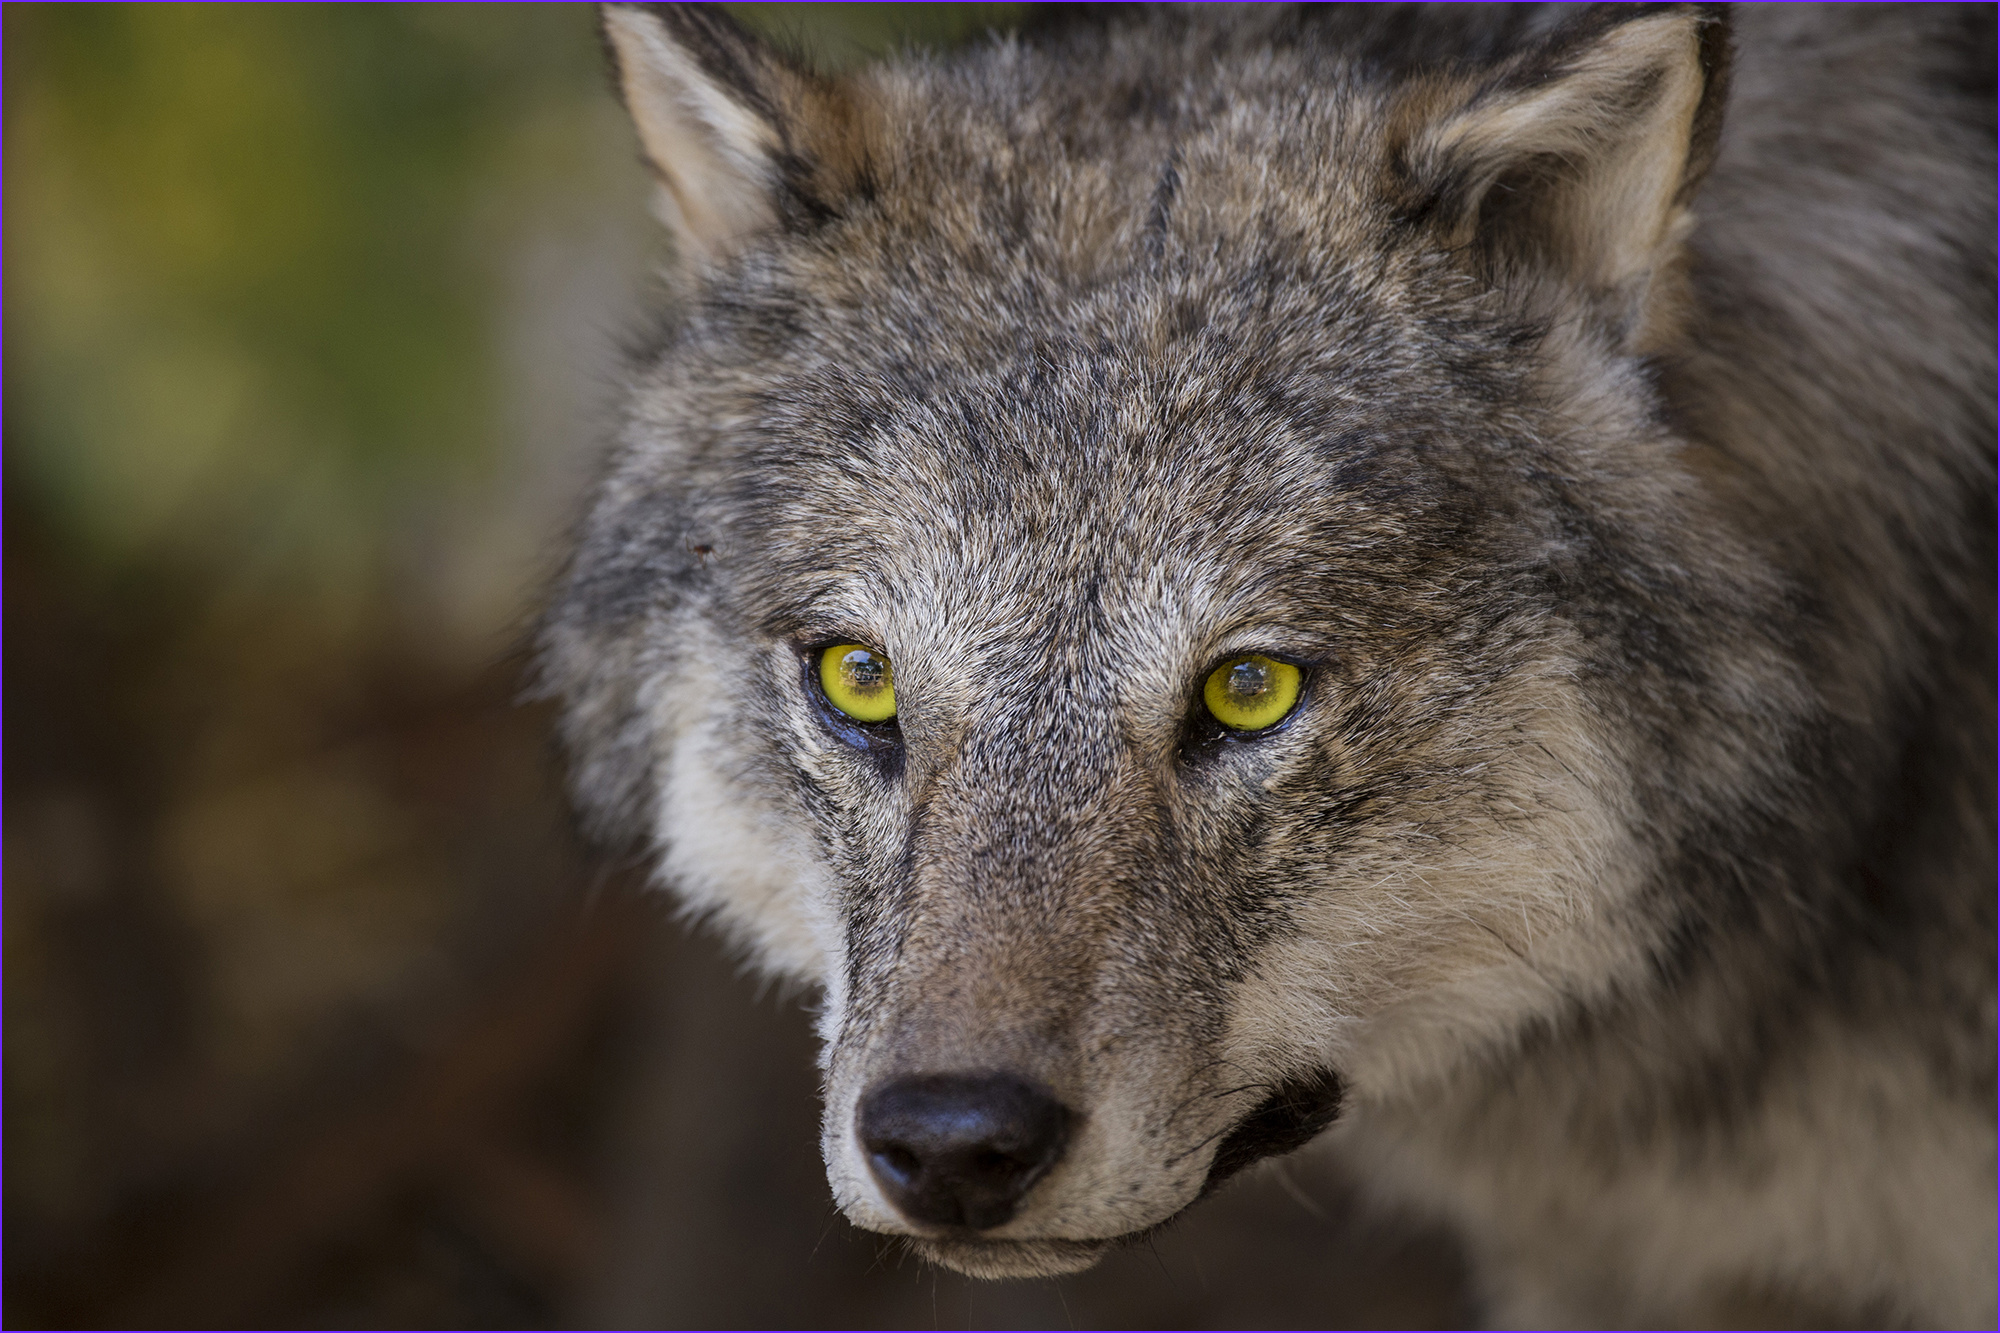 Gray's Anatomy Coloring Book Awesome Collection Ficials to Lift Protections for Gray Wolves In Lower 48